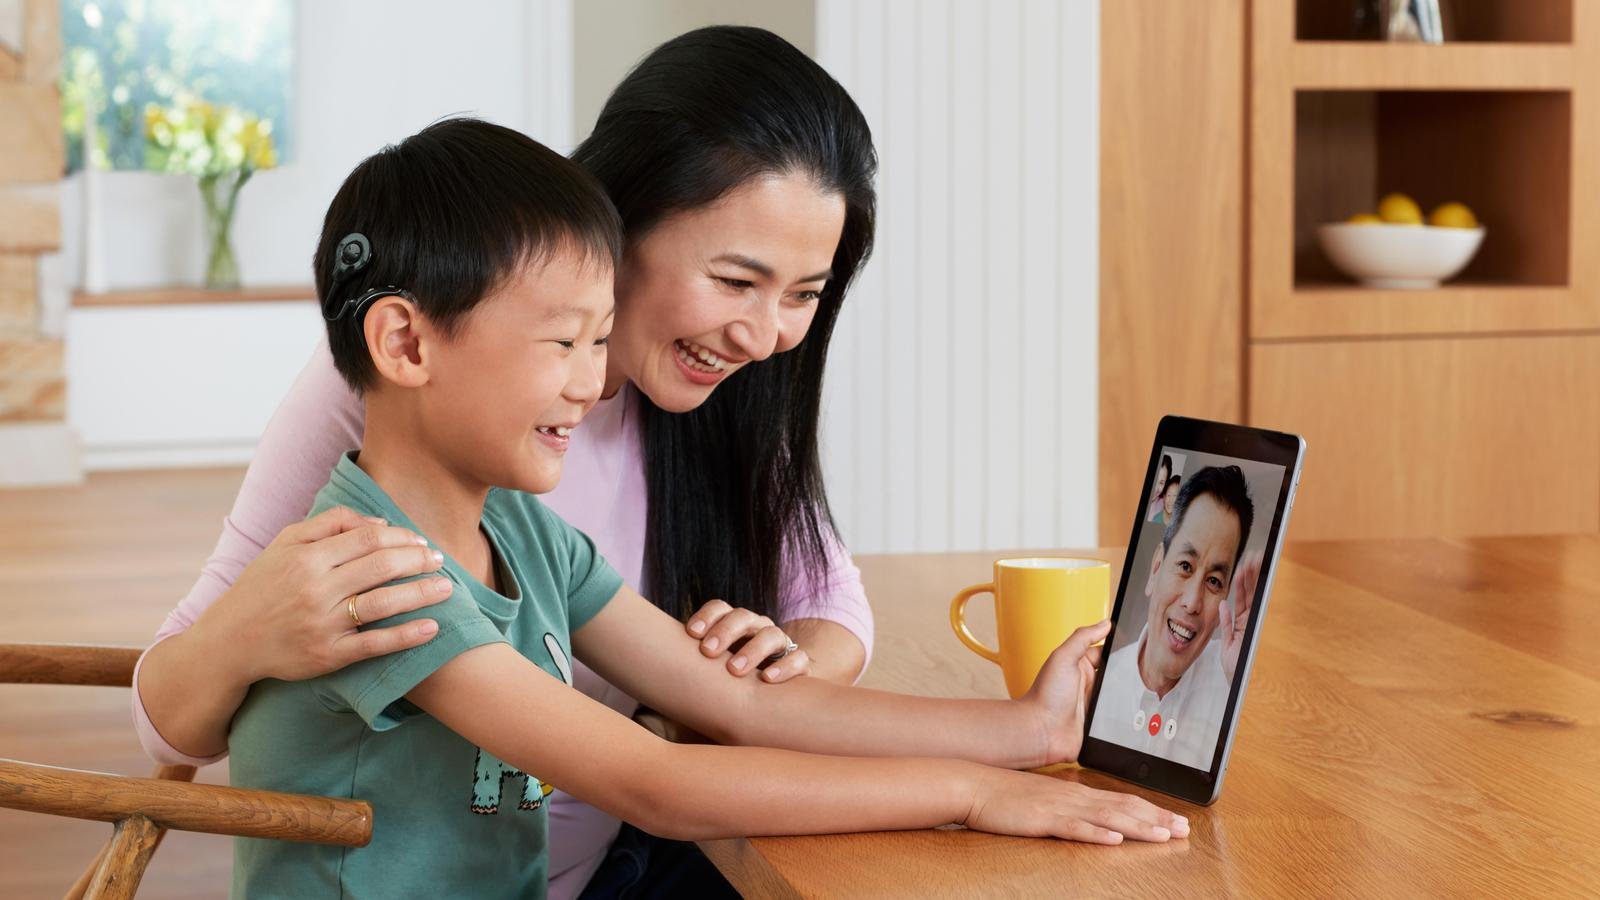 A family speak to each other via an iPad